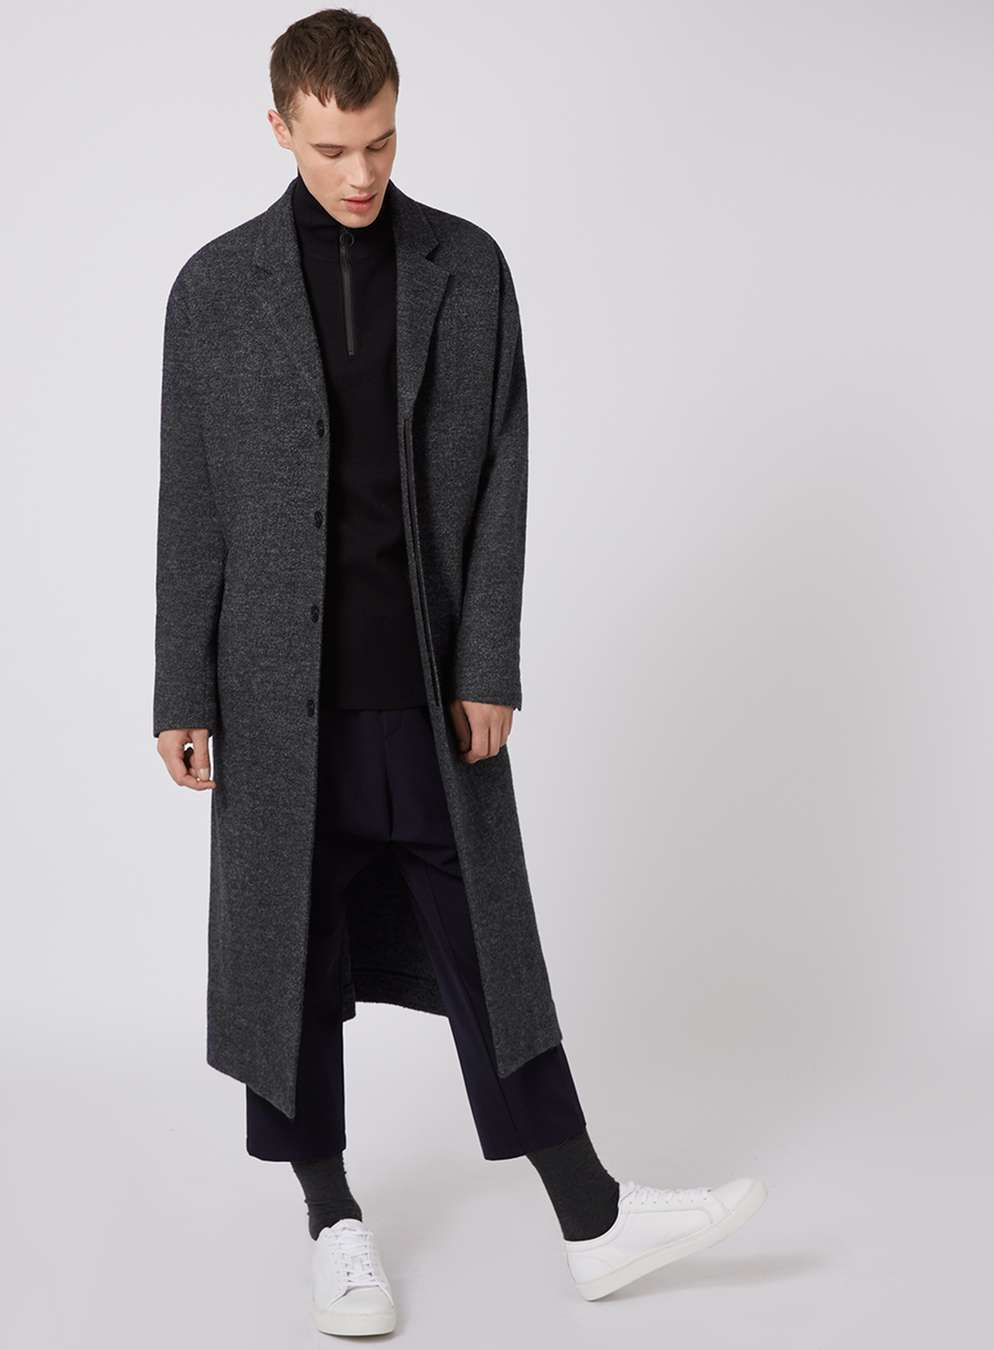 LUX mélange wool rich coat ,  £130   LUX funnel neck jumper , £40  LUX cropped trousers ,  £40